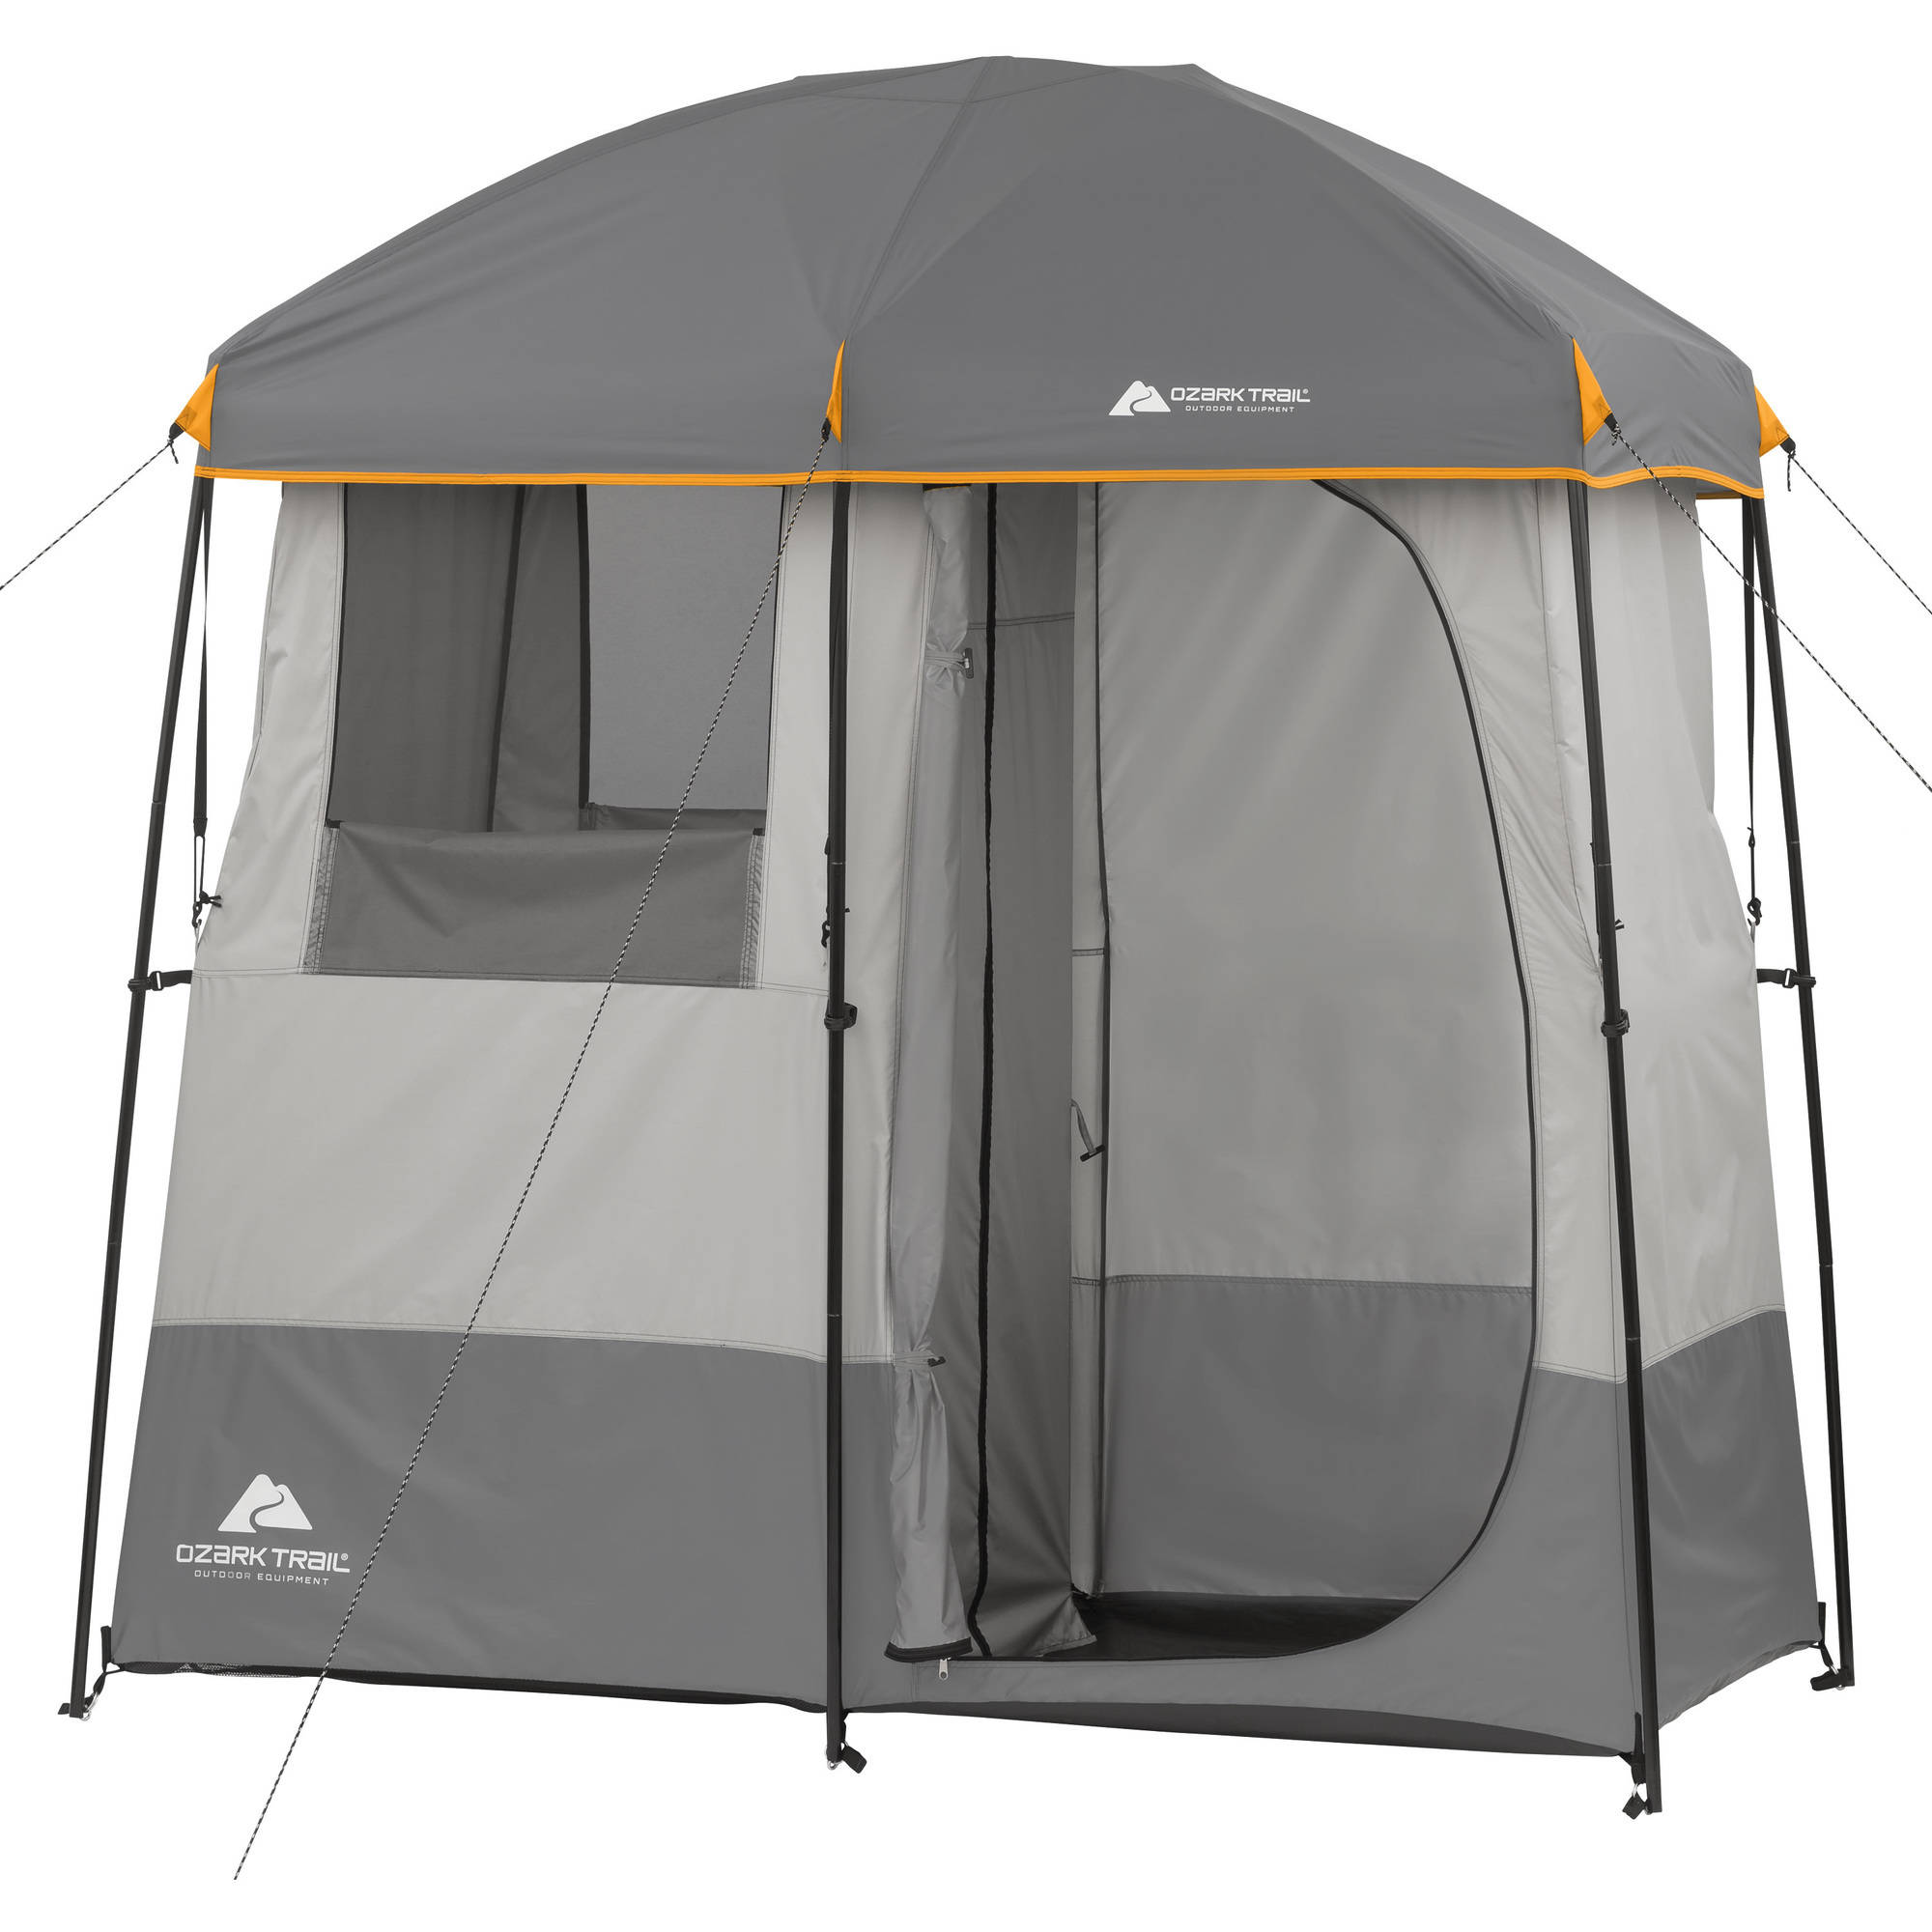 Ozark Trail Room NonInstant Shower Tent Walmartcom - Camping bathroom tent